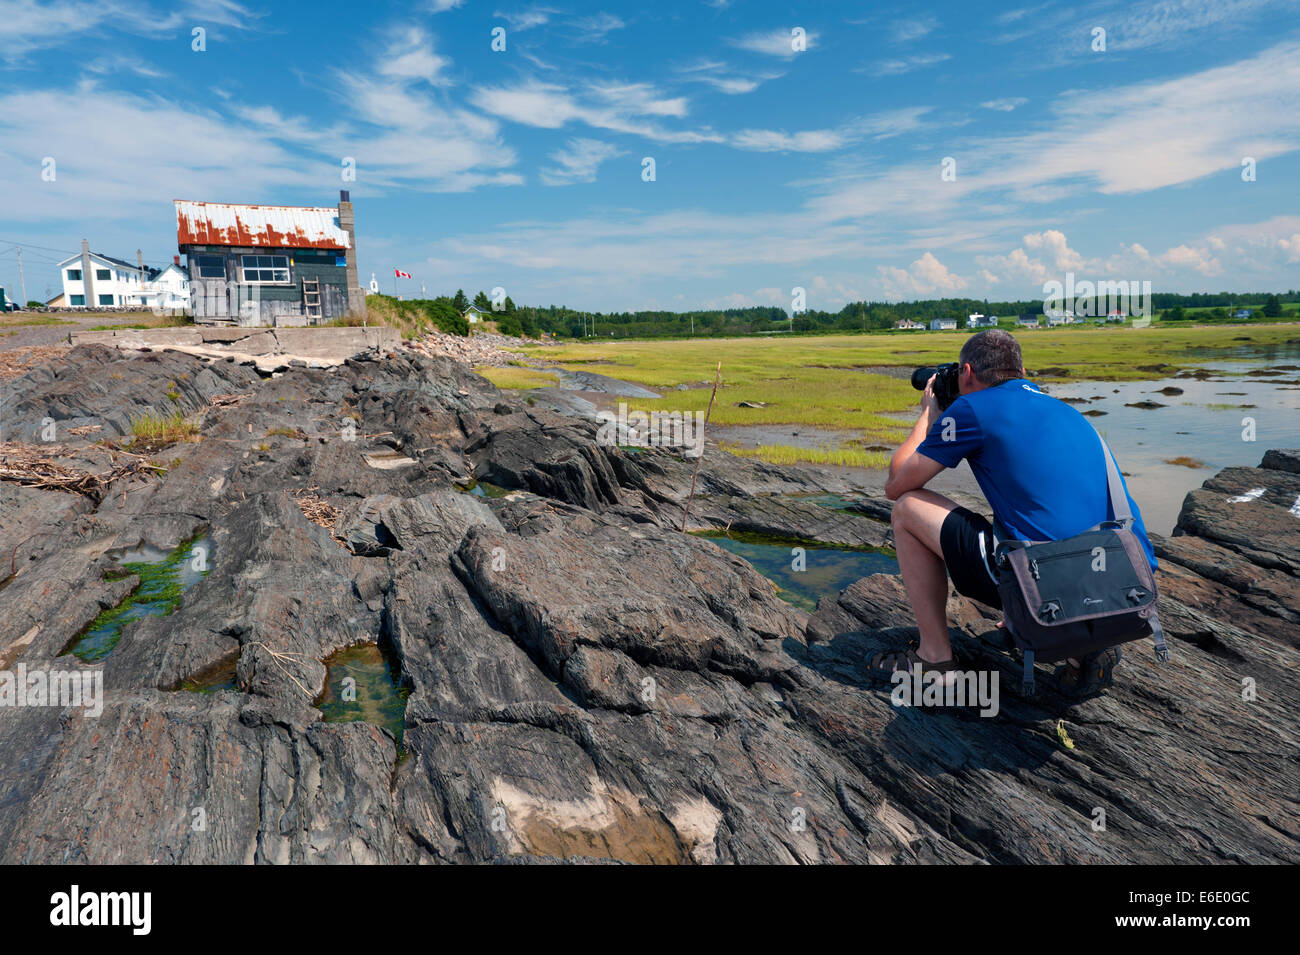 photographer-taking-a-picture-of-an-old-fisherman-shack-in-pointe-E6E0GC.jpg